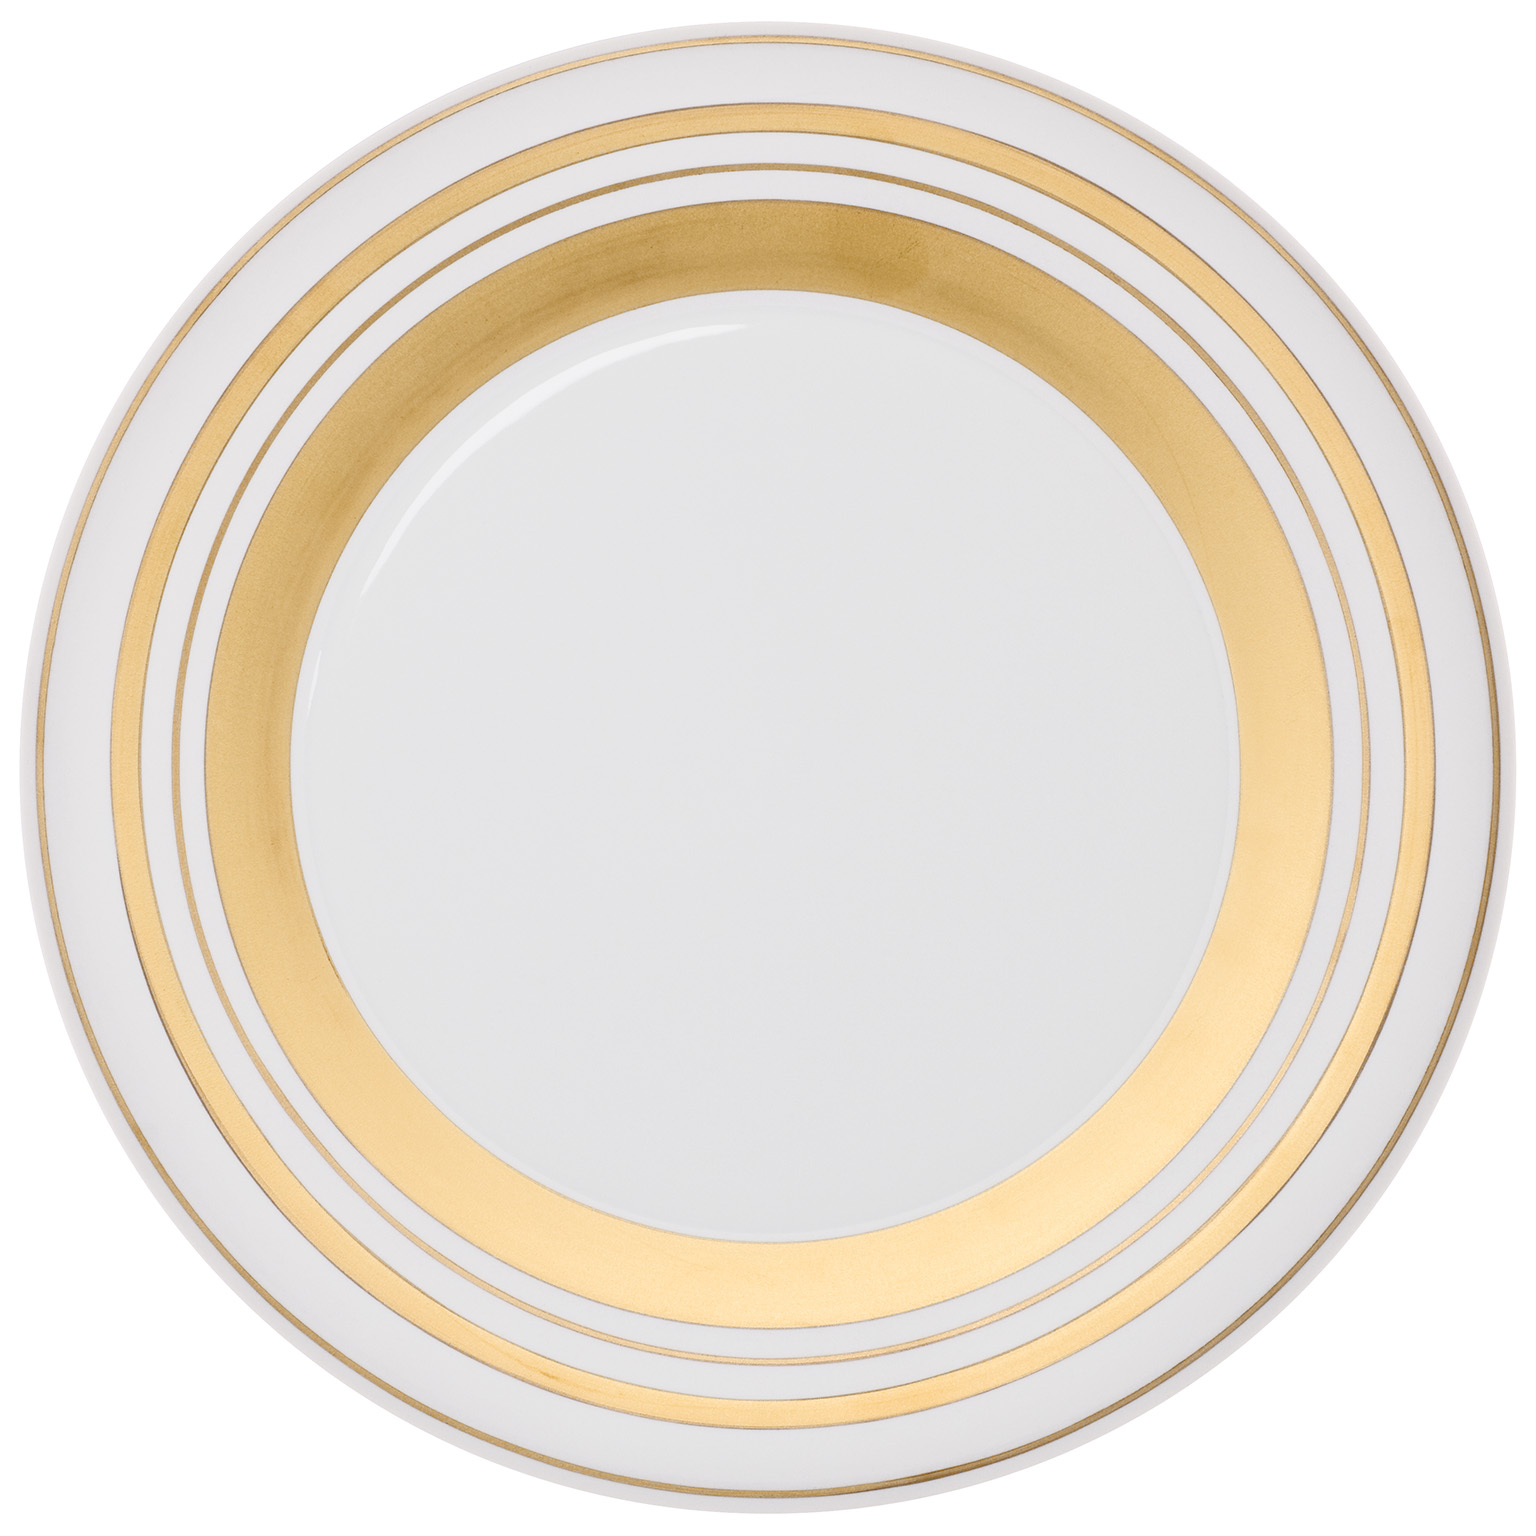 Glamour Gold Presentation Plate Charger